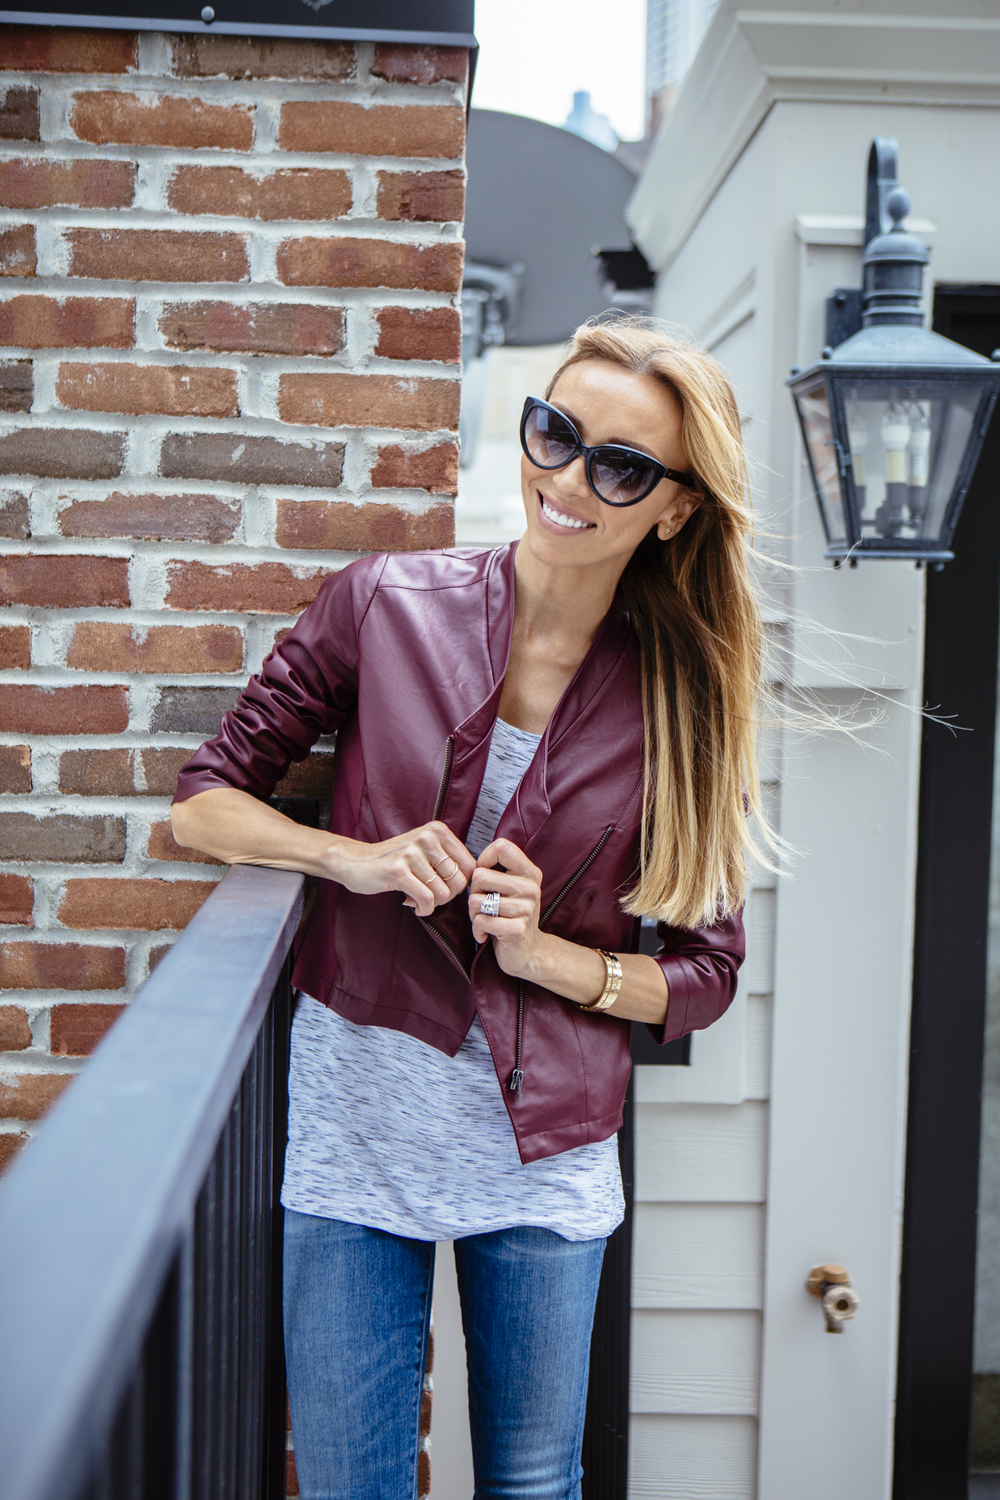 Jacket ($129.90 but will be $79.90 for one day only on August 26, starting at midnight ET!)